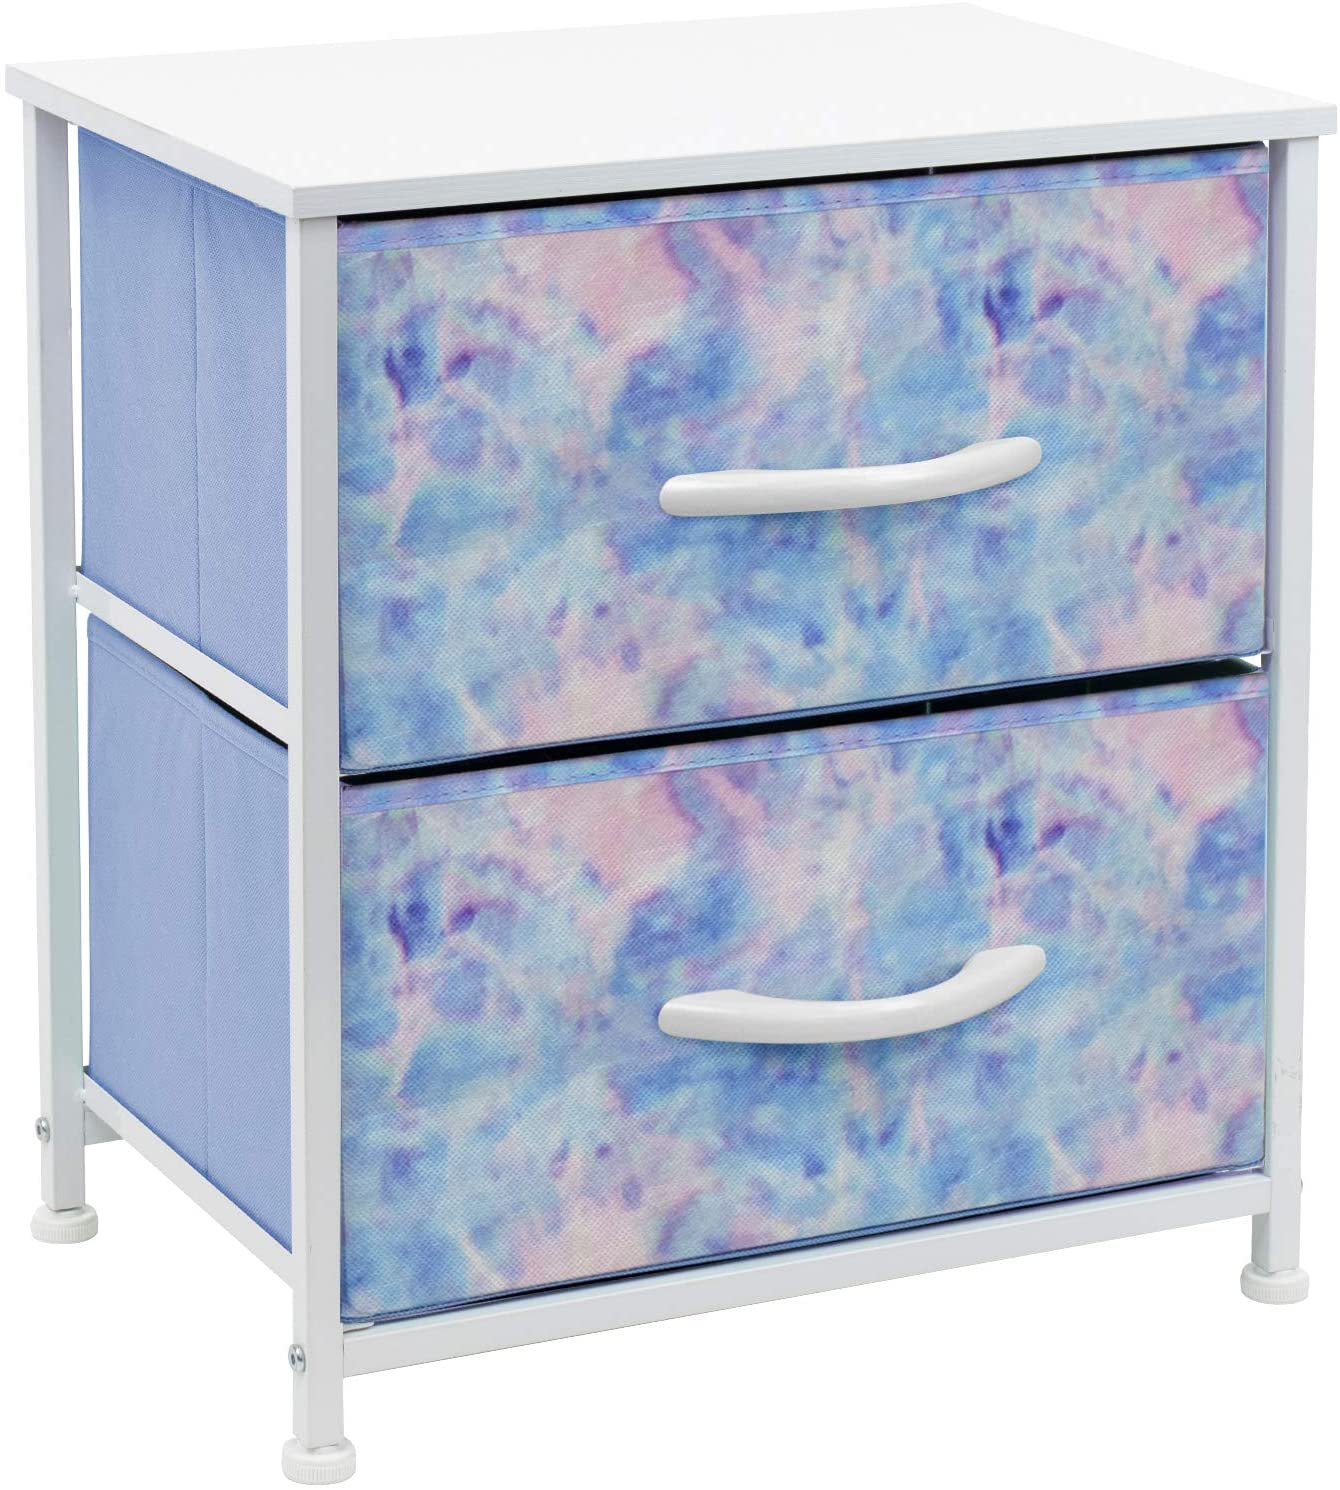 Sorbus Nightstand with 2 Drawers - Bedside Furniture & Accent End Table Chest for Home, Bedroom Accessories, Office, College Dorm, Steel Frame, Wood Top, Easy Pull Fabric Bins (Pastel Tie-dye)